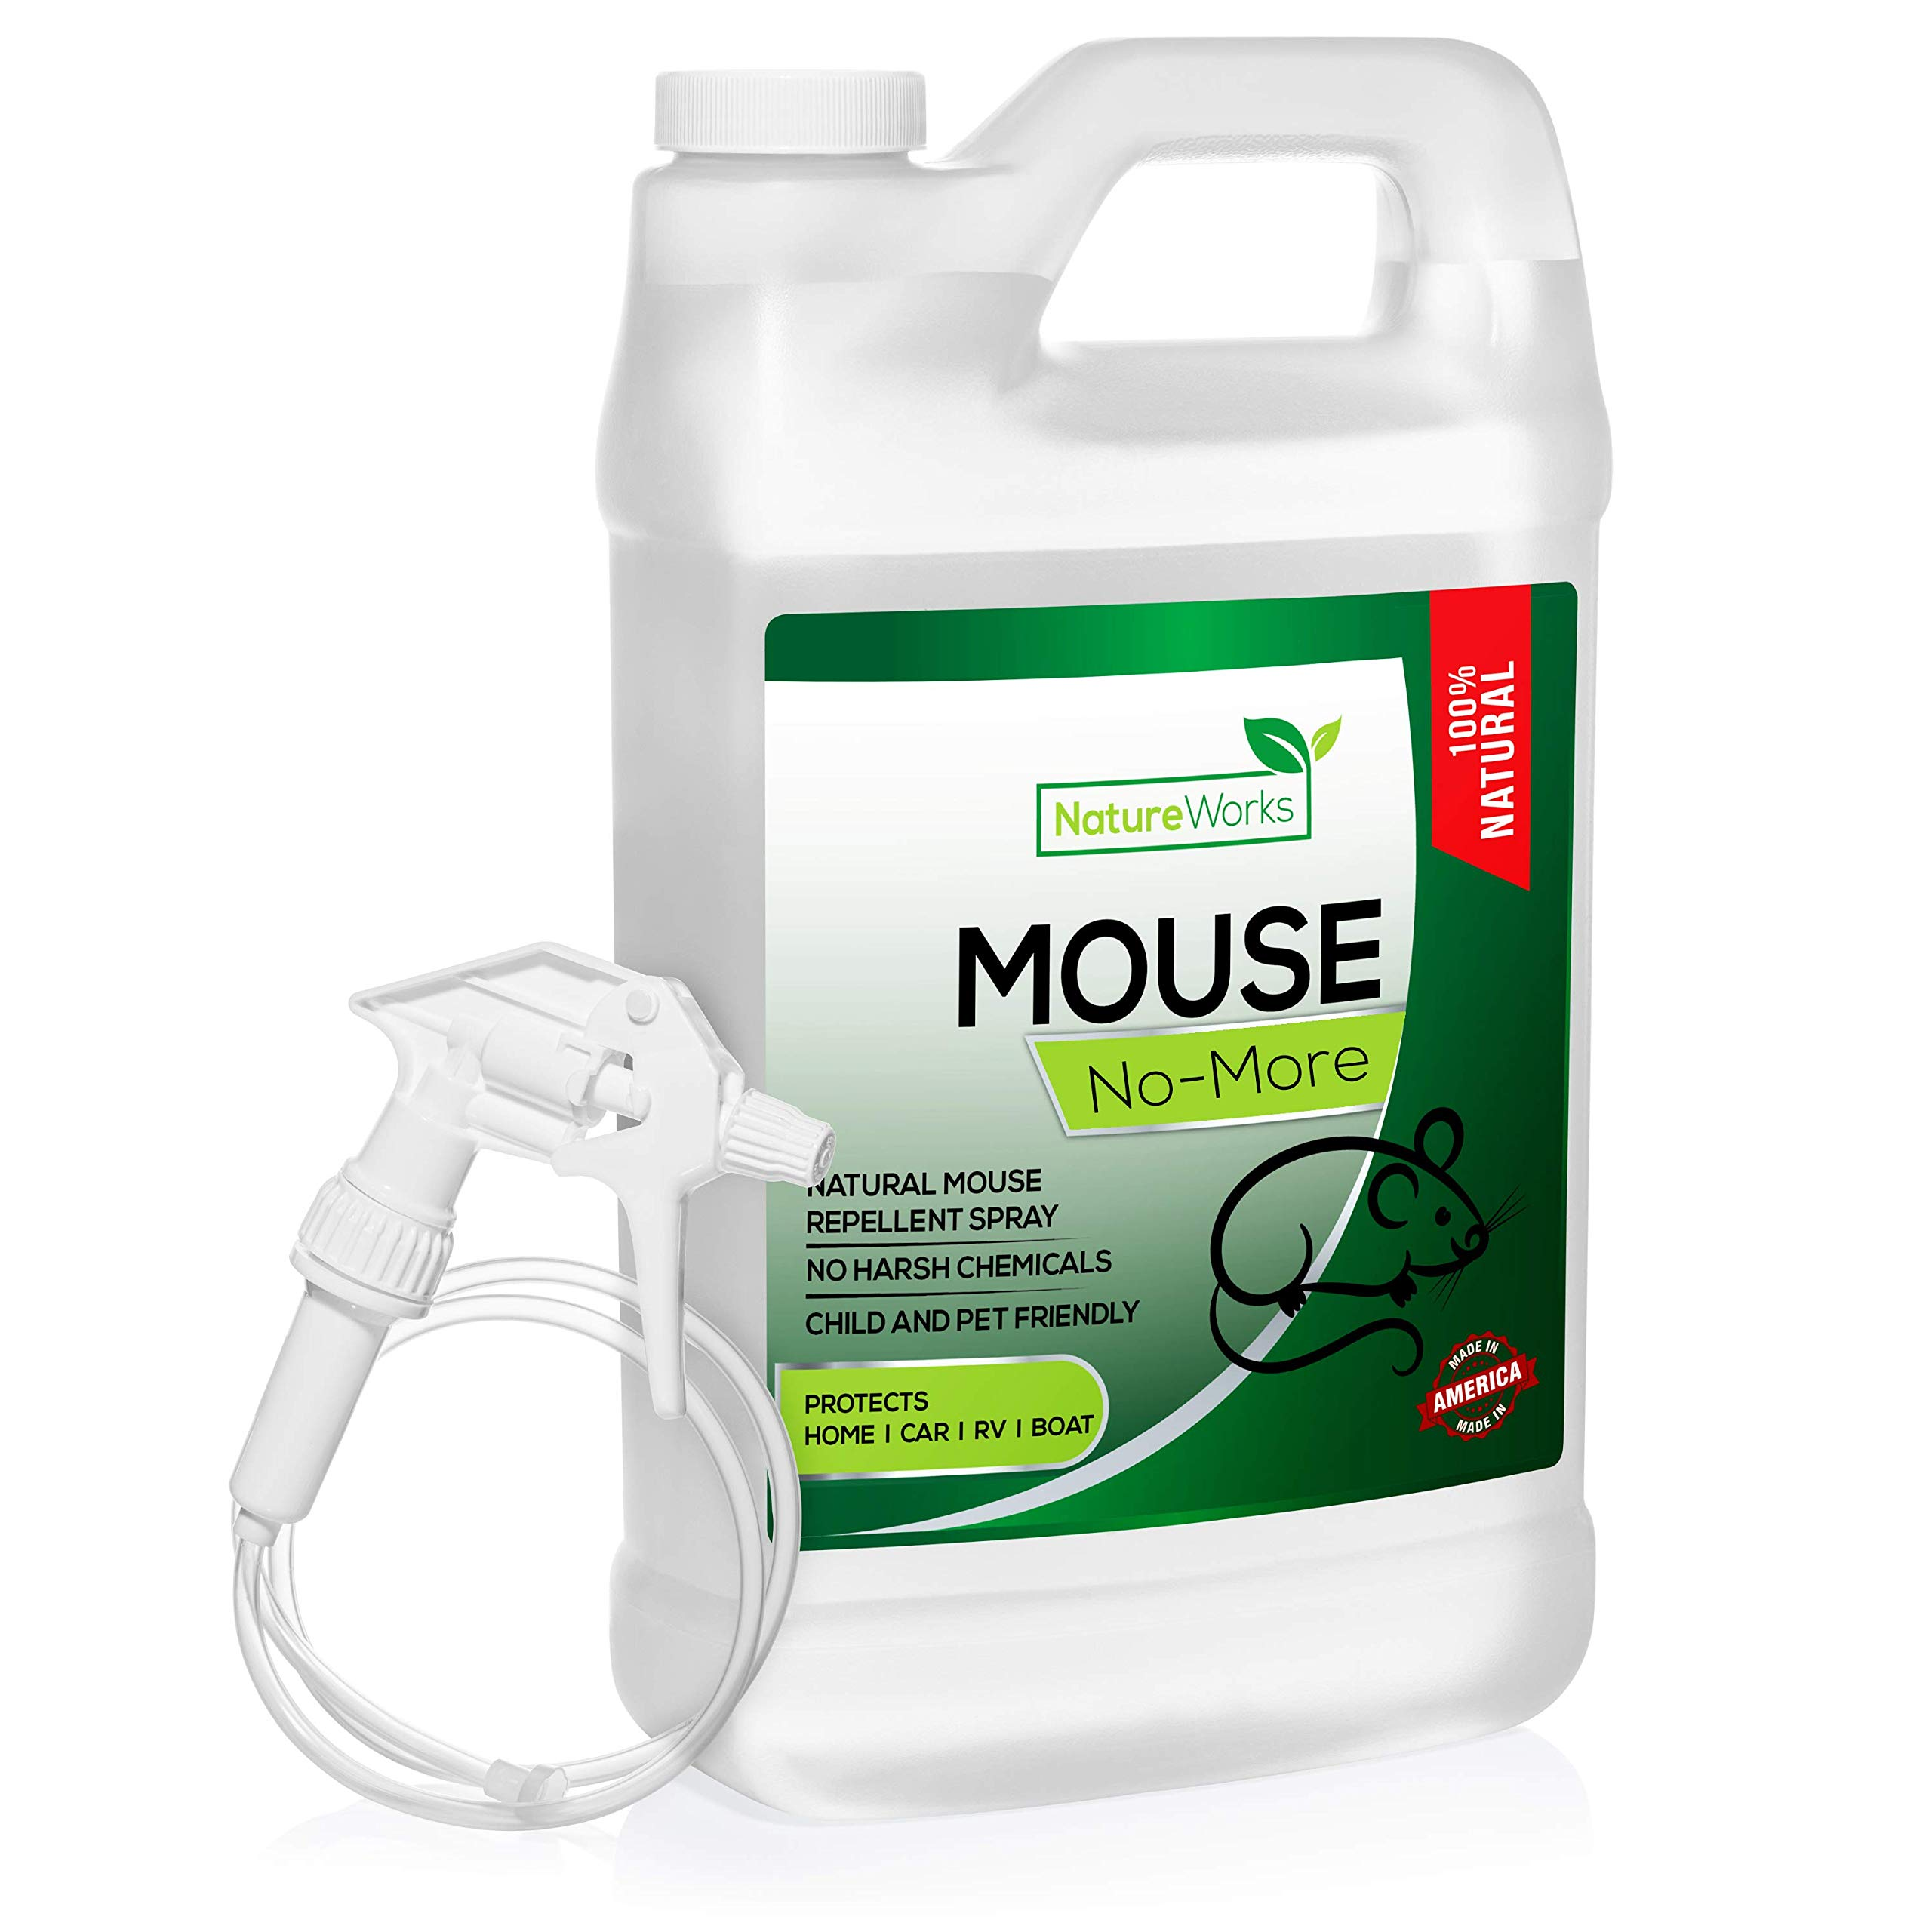 Mouse No-More I Mice Repellent Spray I Mouse Rat Squirrel & Rodent Defense I Vehicle Protection Car RV & Boat I Indoor & Outdoor I Peppermint Oil | Trap & Poison Alternative | Natural Non-Toxic | by NatureWorks